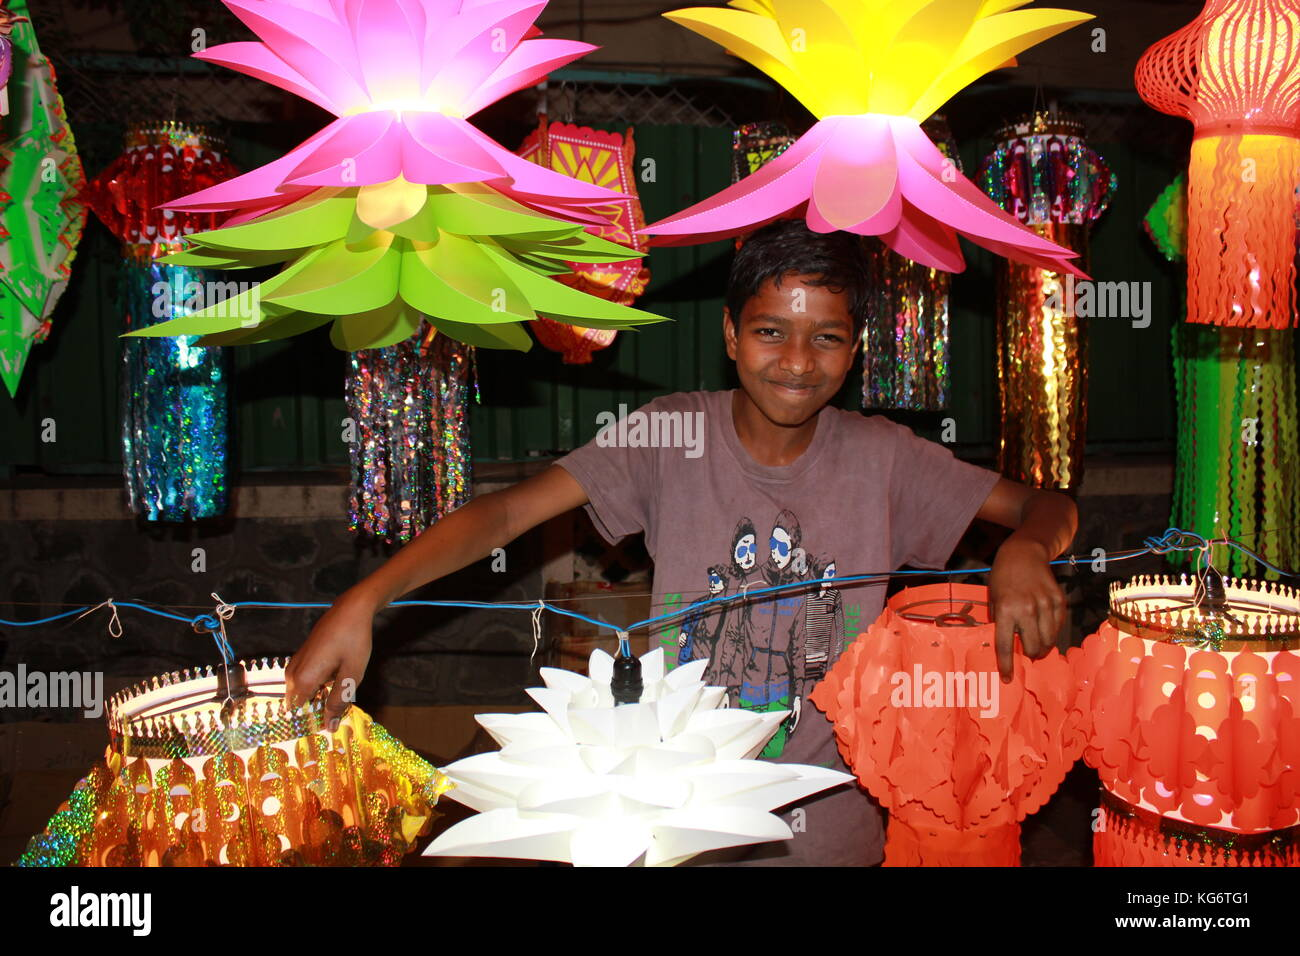 Lantern Seller - Stock Image